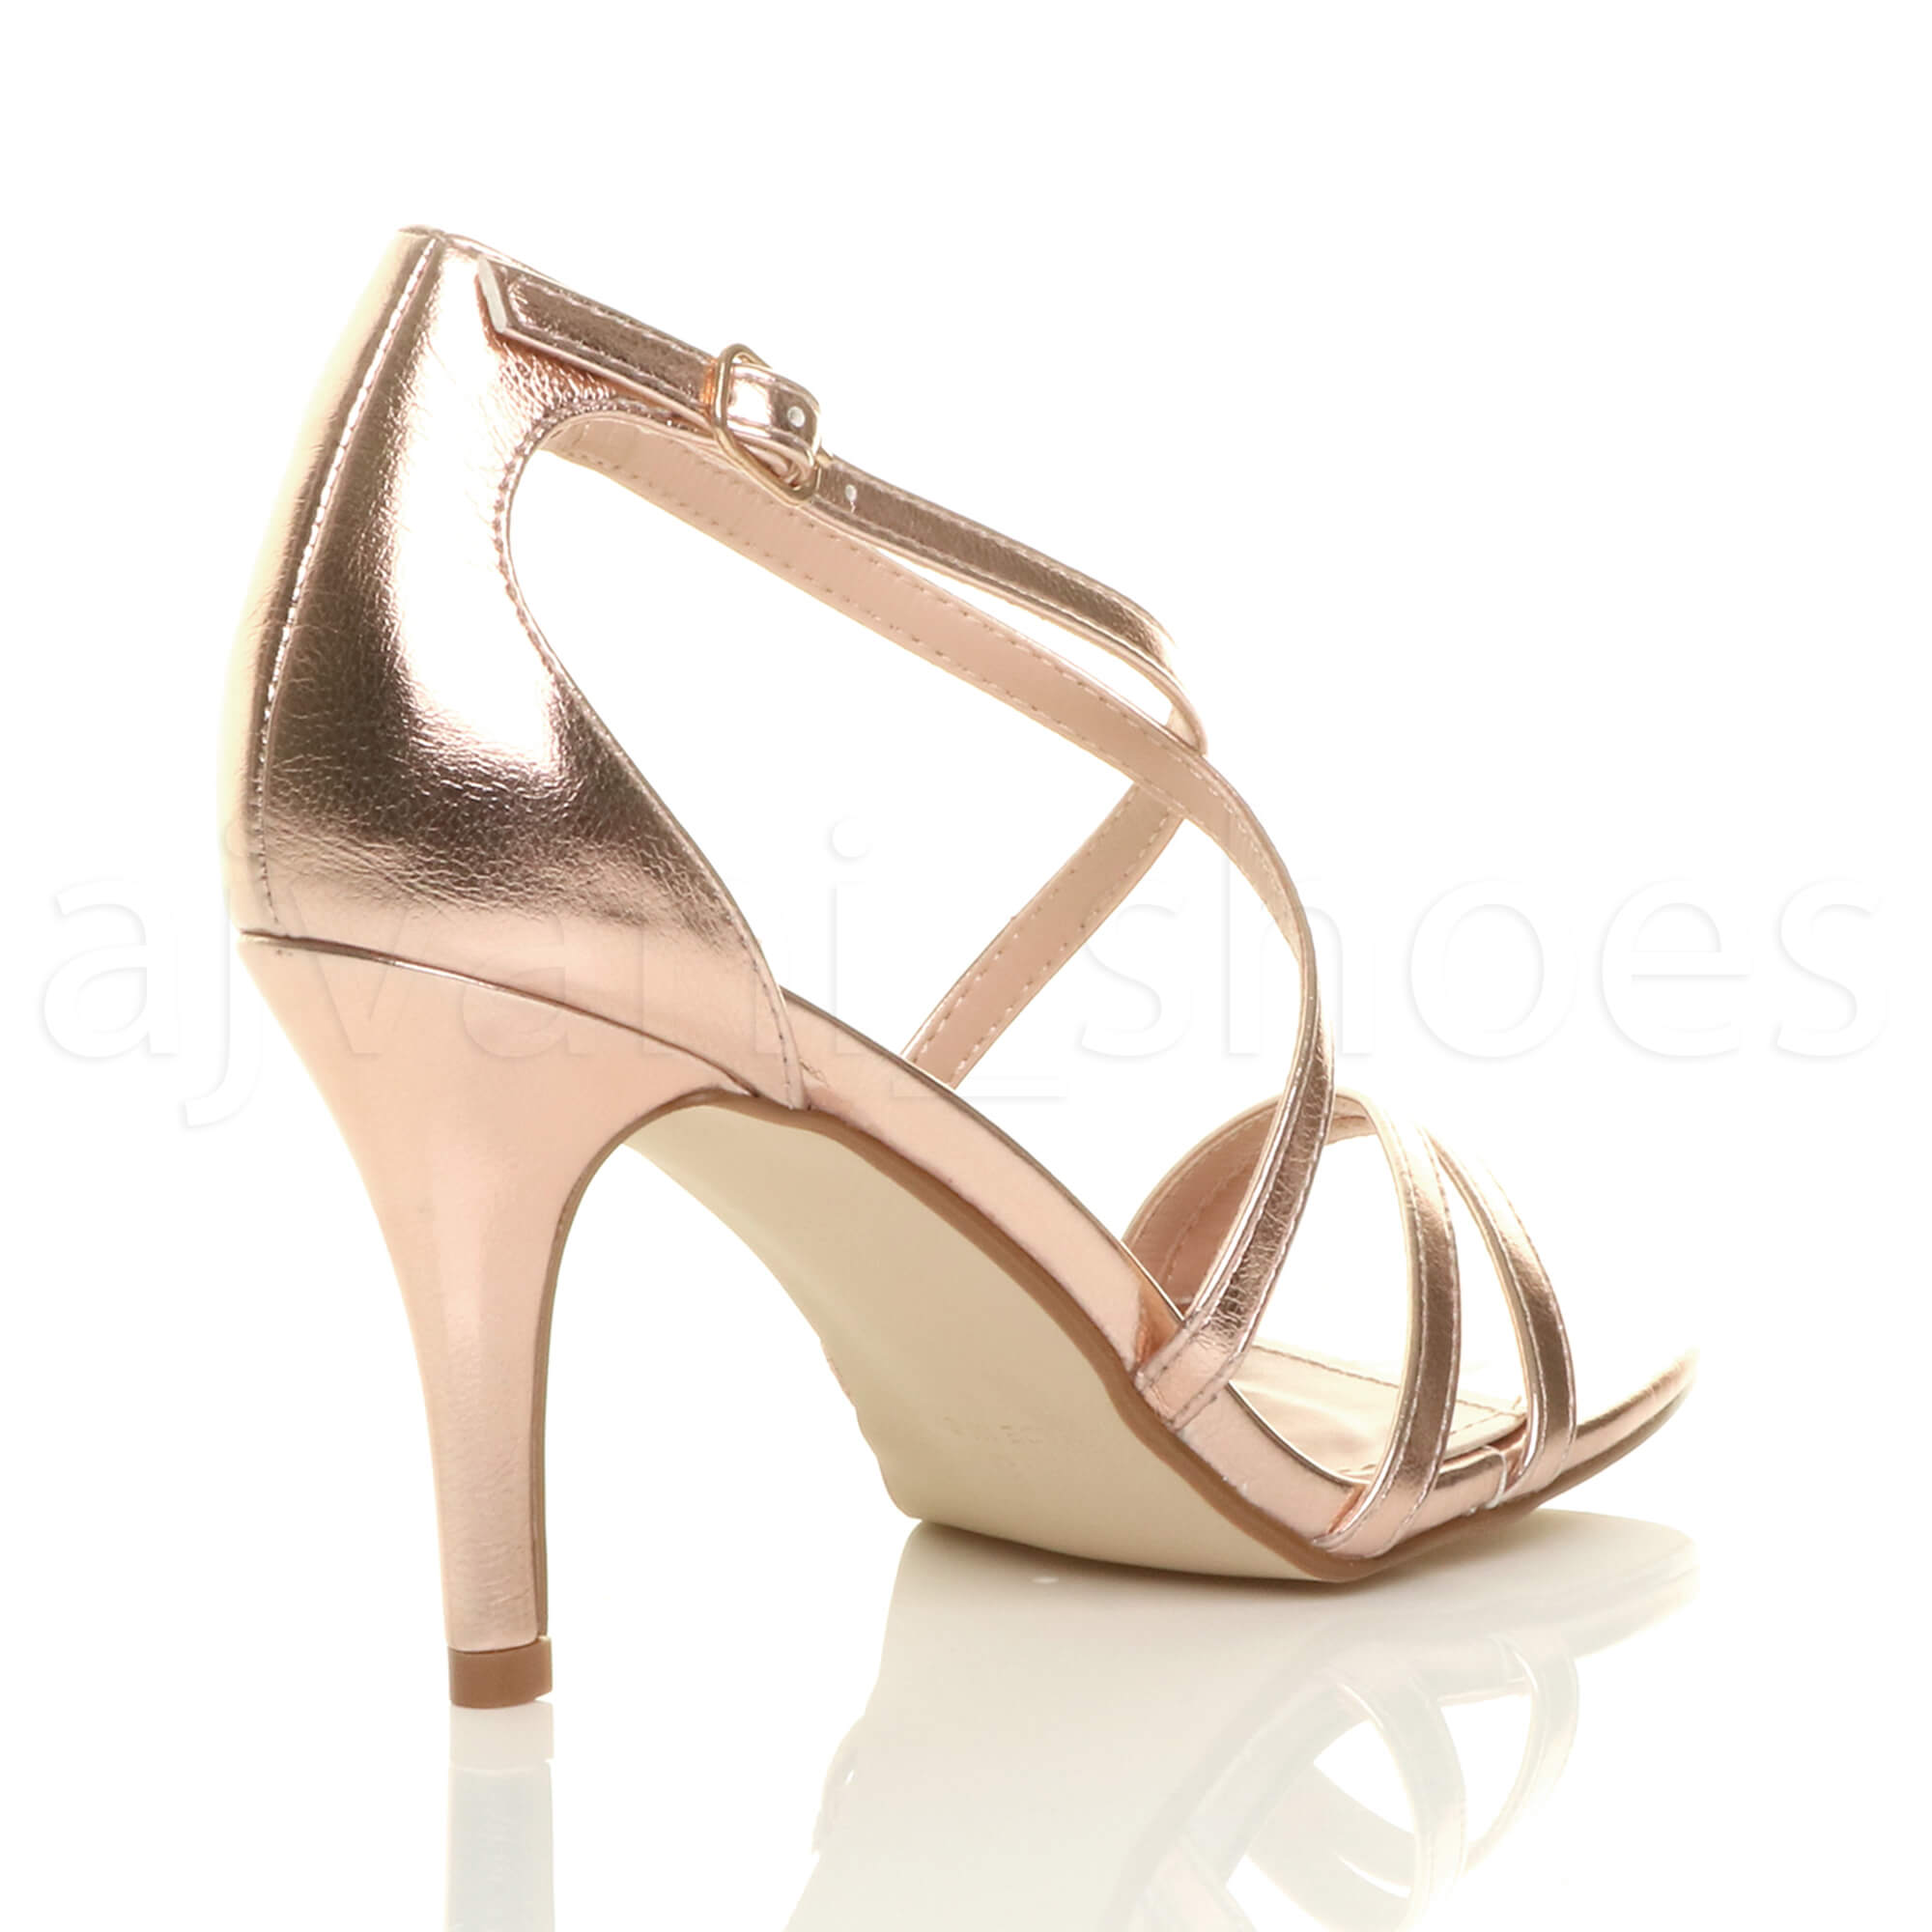 WOMENS-LADIES-MID-HIGH-HEEL-STRAPPY-CROSSOVER-WEDDING-PROM-SANDALS-SHOES-SIZE thumbnail 138